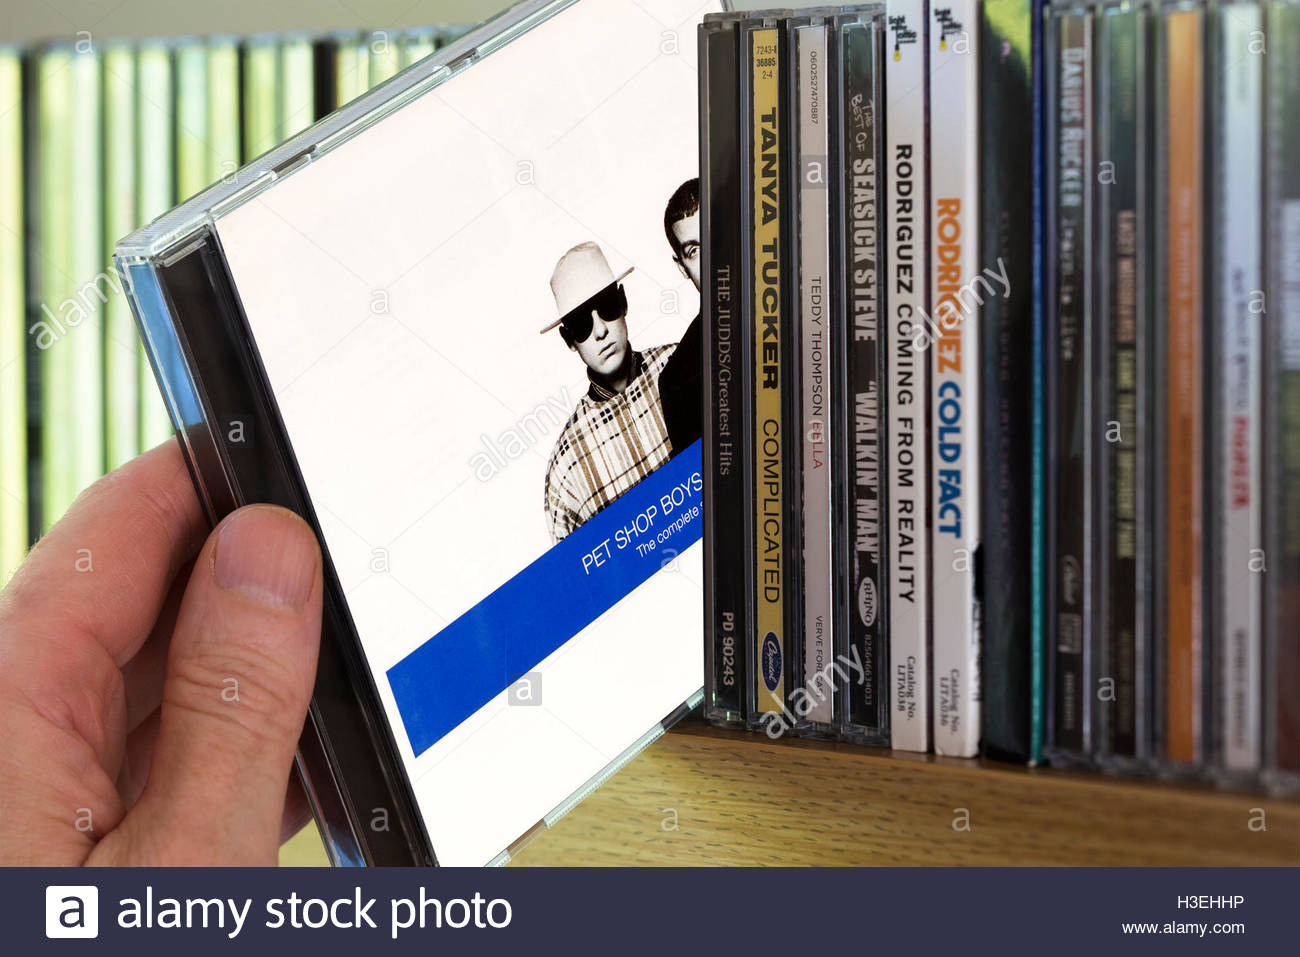 The Complete Singles Collection 1991 Pet Shop Boys-Discography CD being chosen from a shelf of other CD's - Stock Image